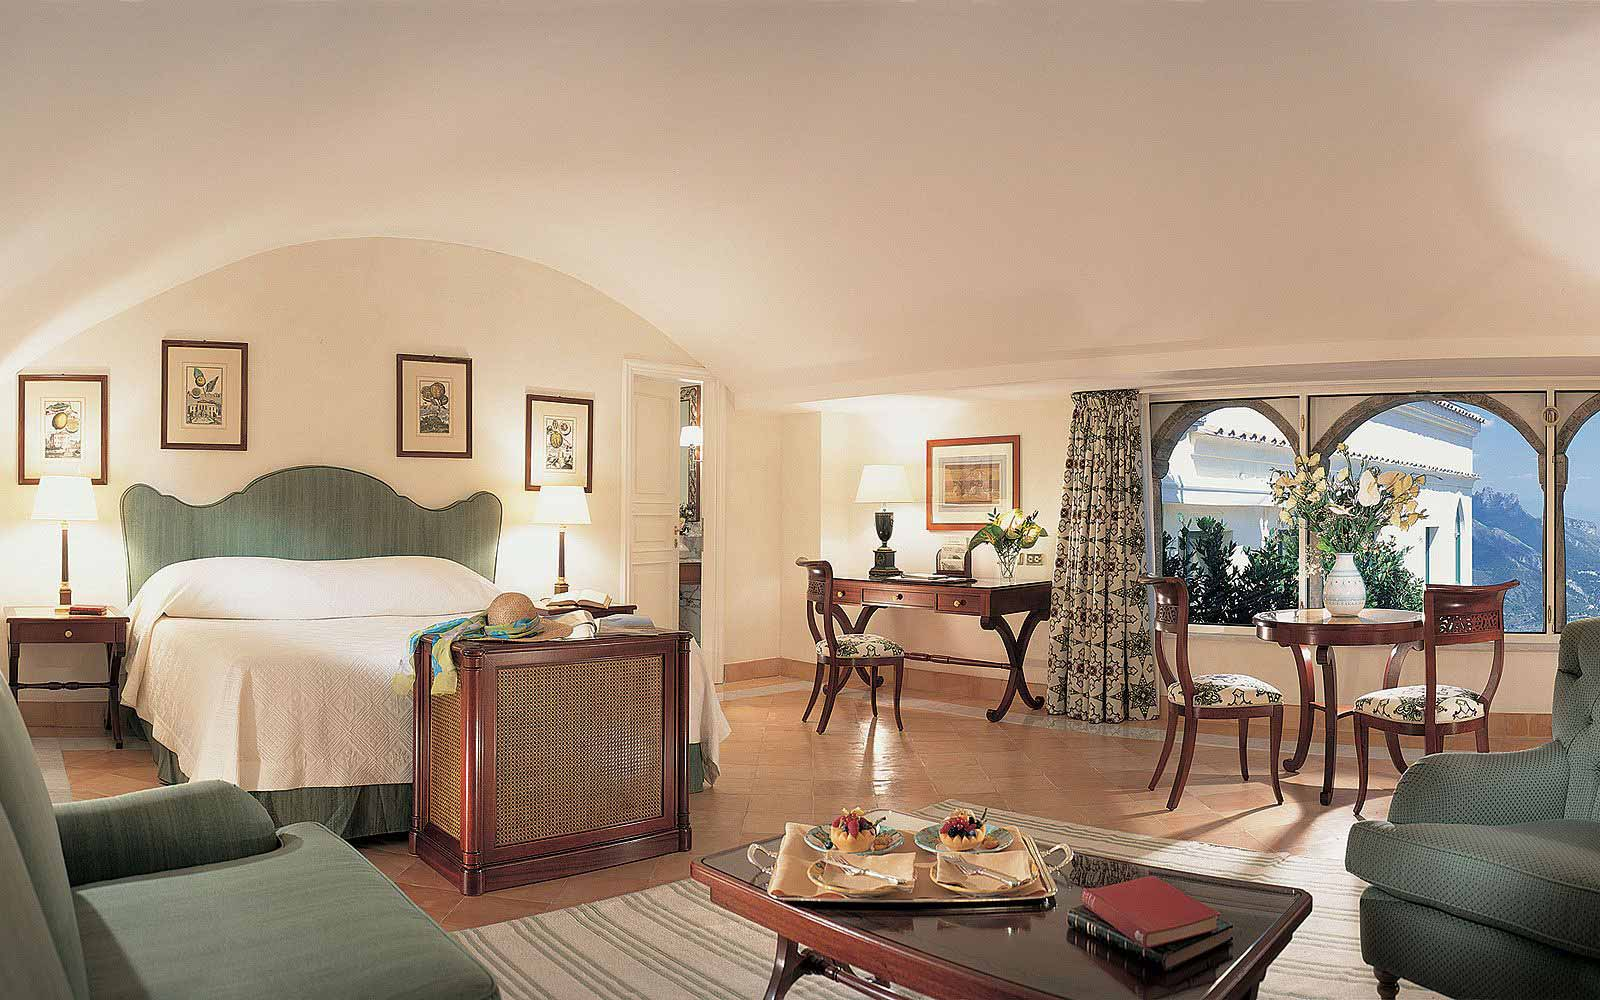 Deluxe Junior Suite with seaview at the Belmond Hotel Caruso